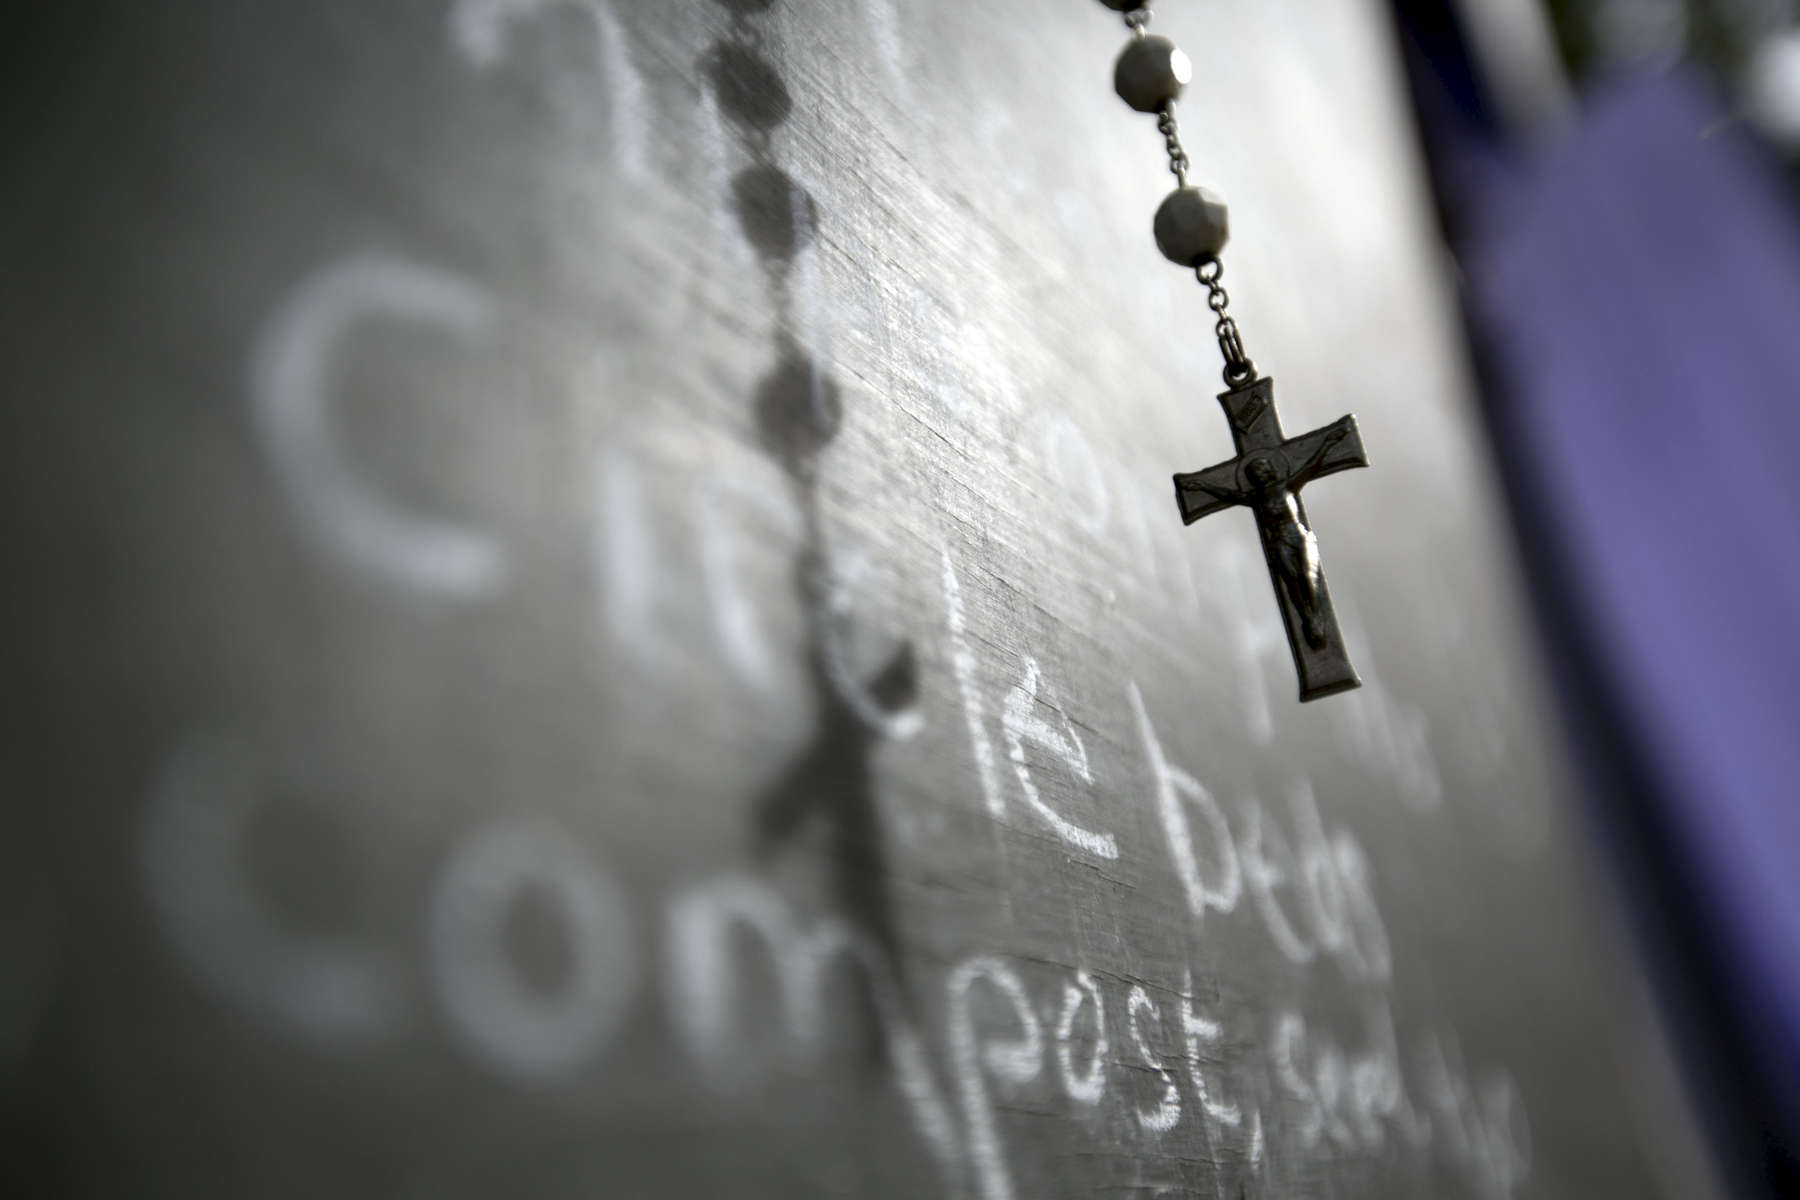 A rosary hangs on a message board in the Greeley Forest Garden in Portland, September 16, 2015. Organizers at the nonprofit Greeley Forest Garden want to partner with other area nonprofits to bring services to the camp, which is on an adjacent lot. Kristyna Wentz-Graff / Staffreligion Catholic